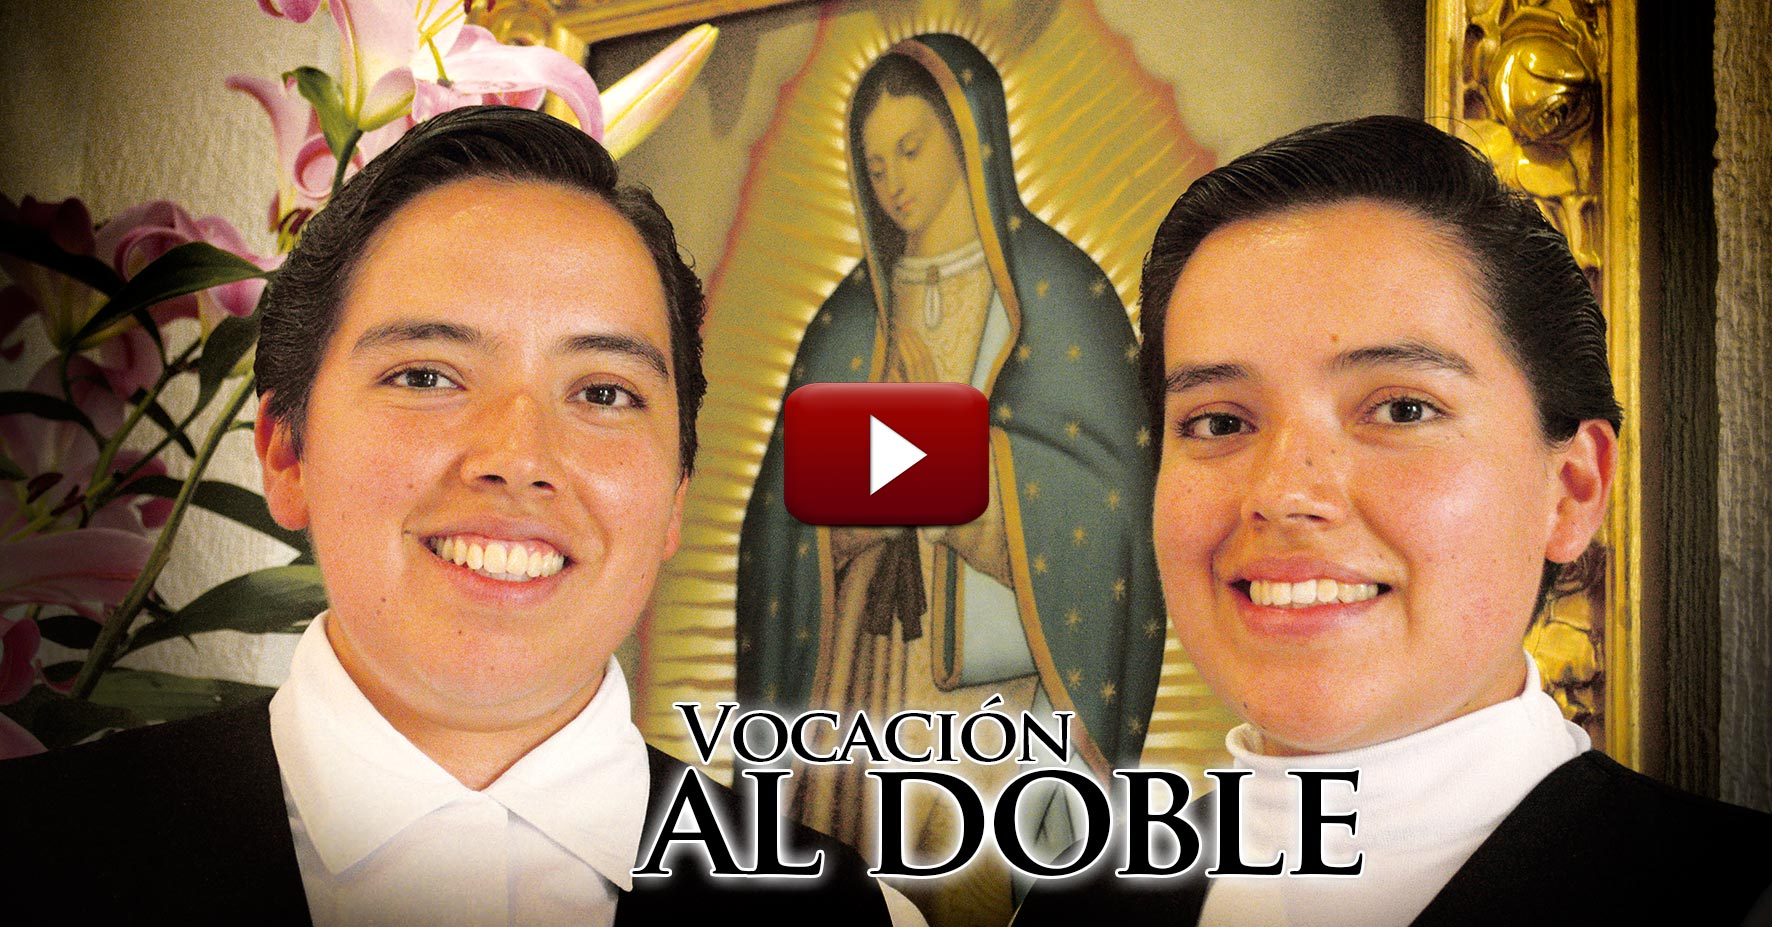 VIDEO Vocación al doble: Gemelas se entregan a Dios como religiosas.